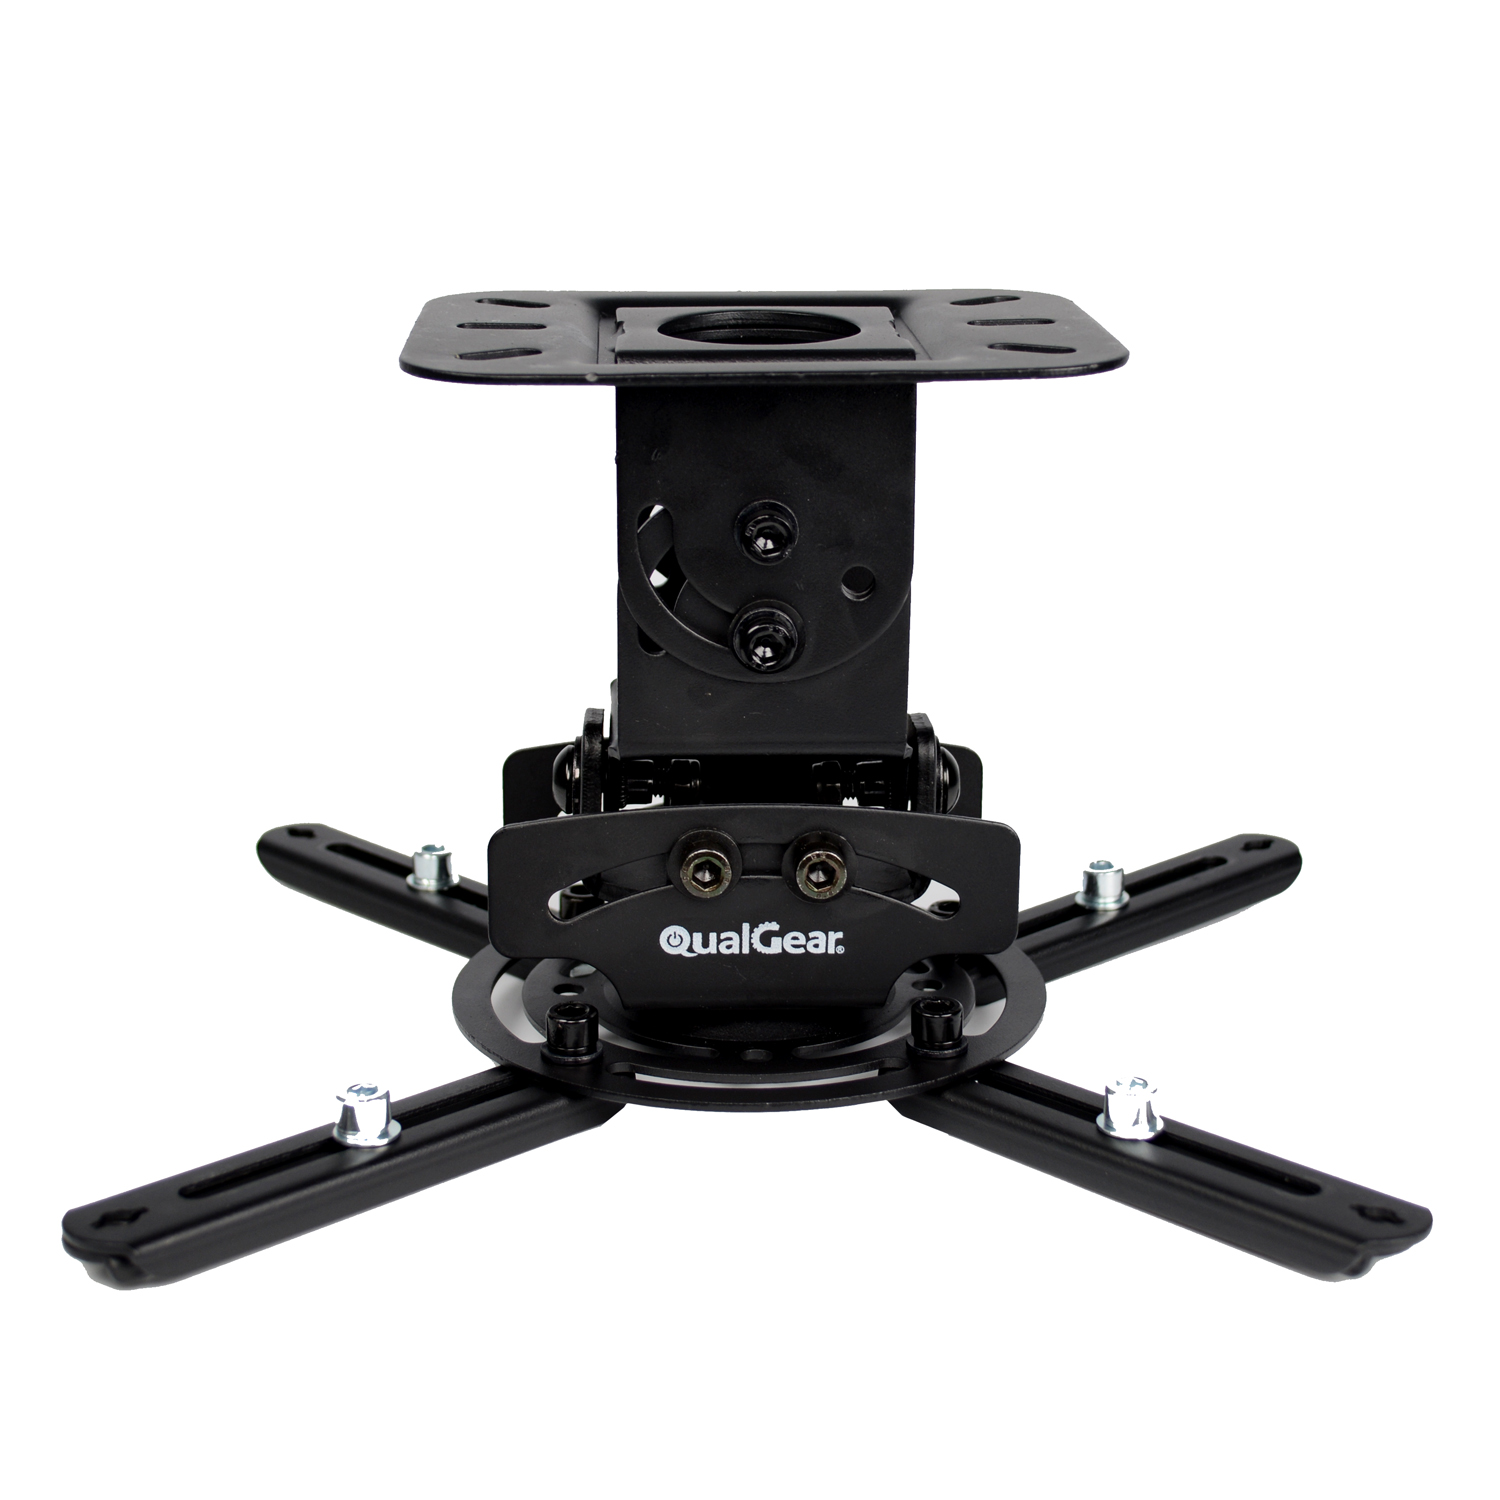 QualGear PRB-717 Universal Projector Ceiling Mount